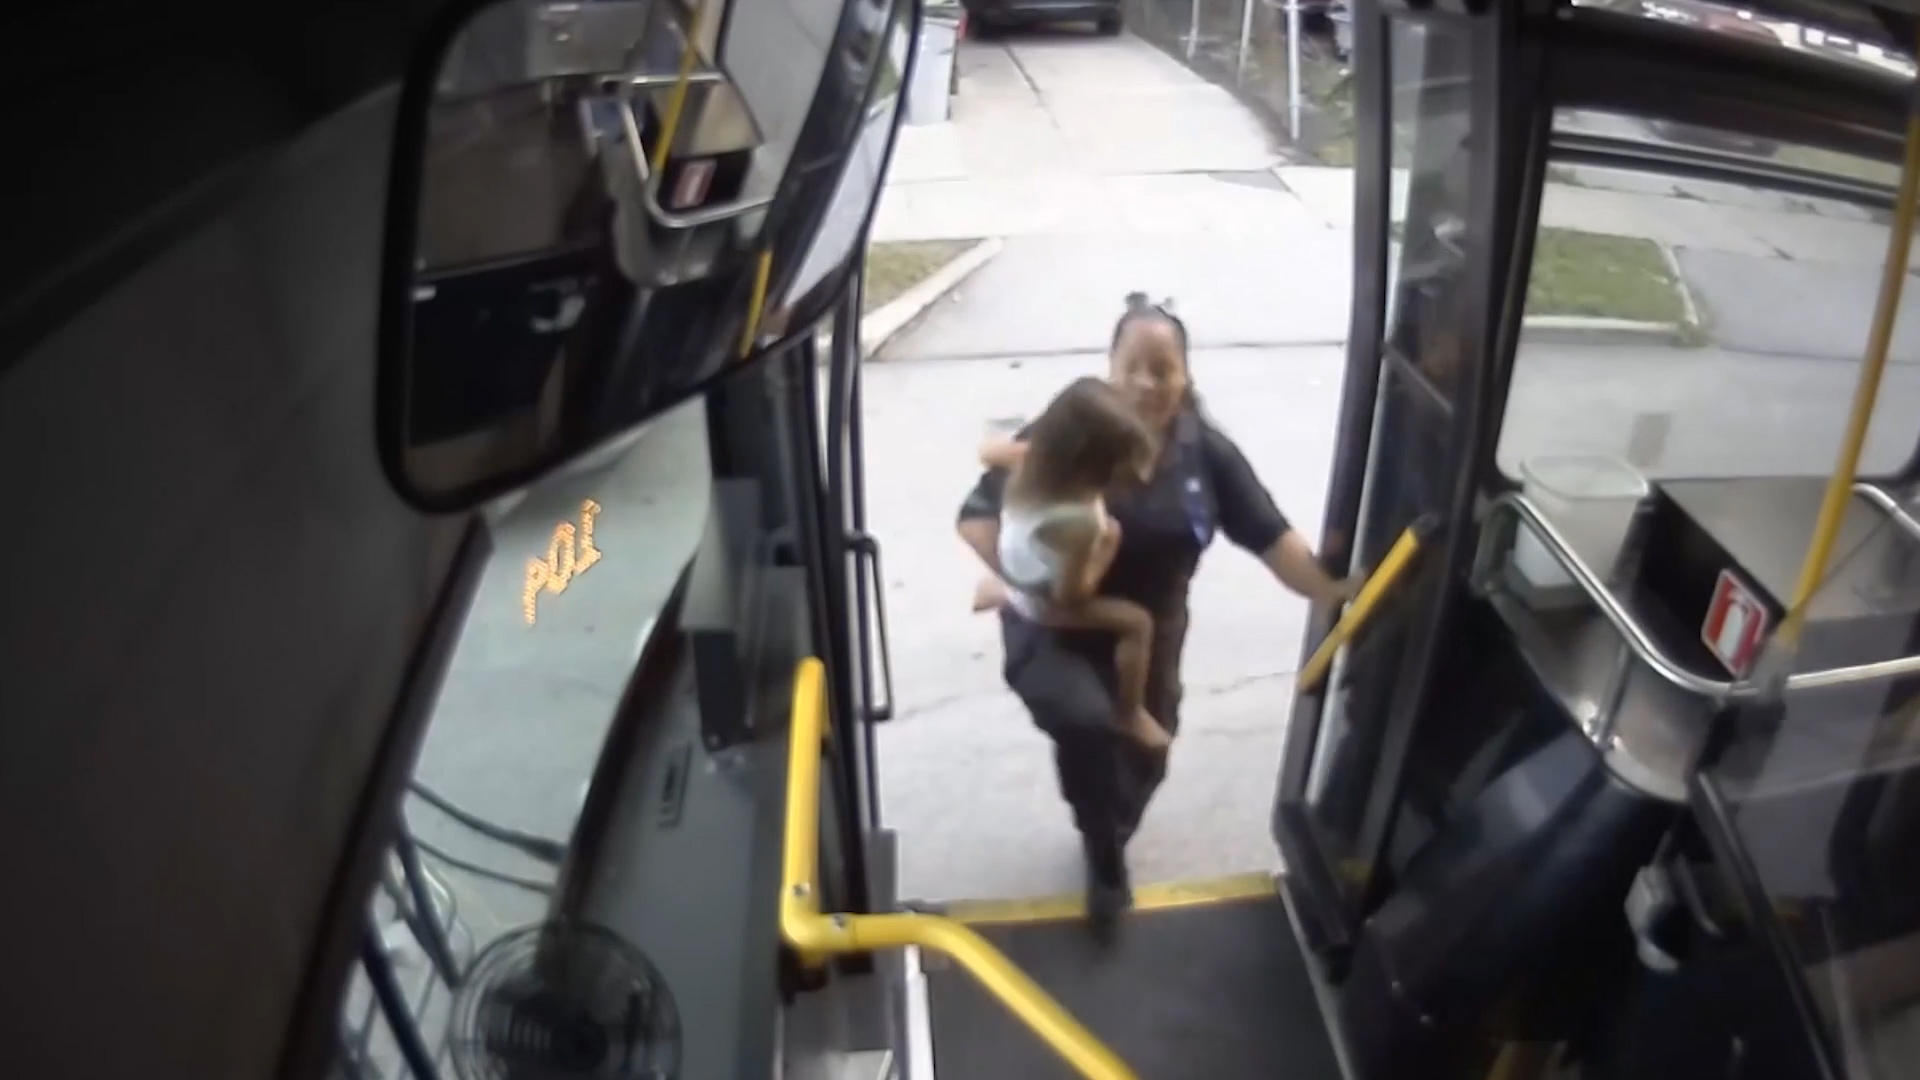 Quick-thinking Milwaukee bus driver saves wandering baby, dramatic video shows